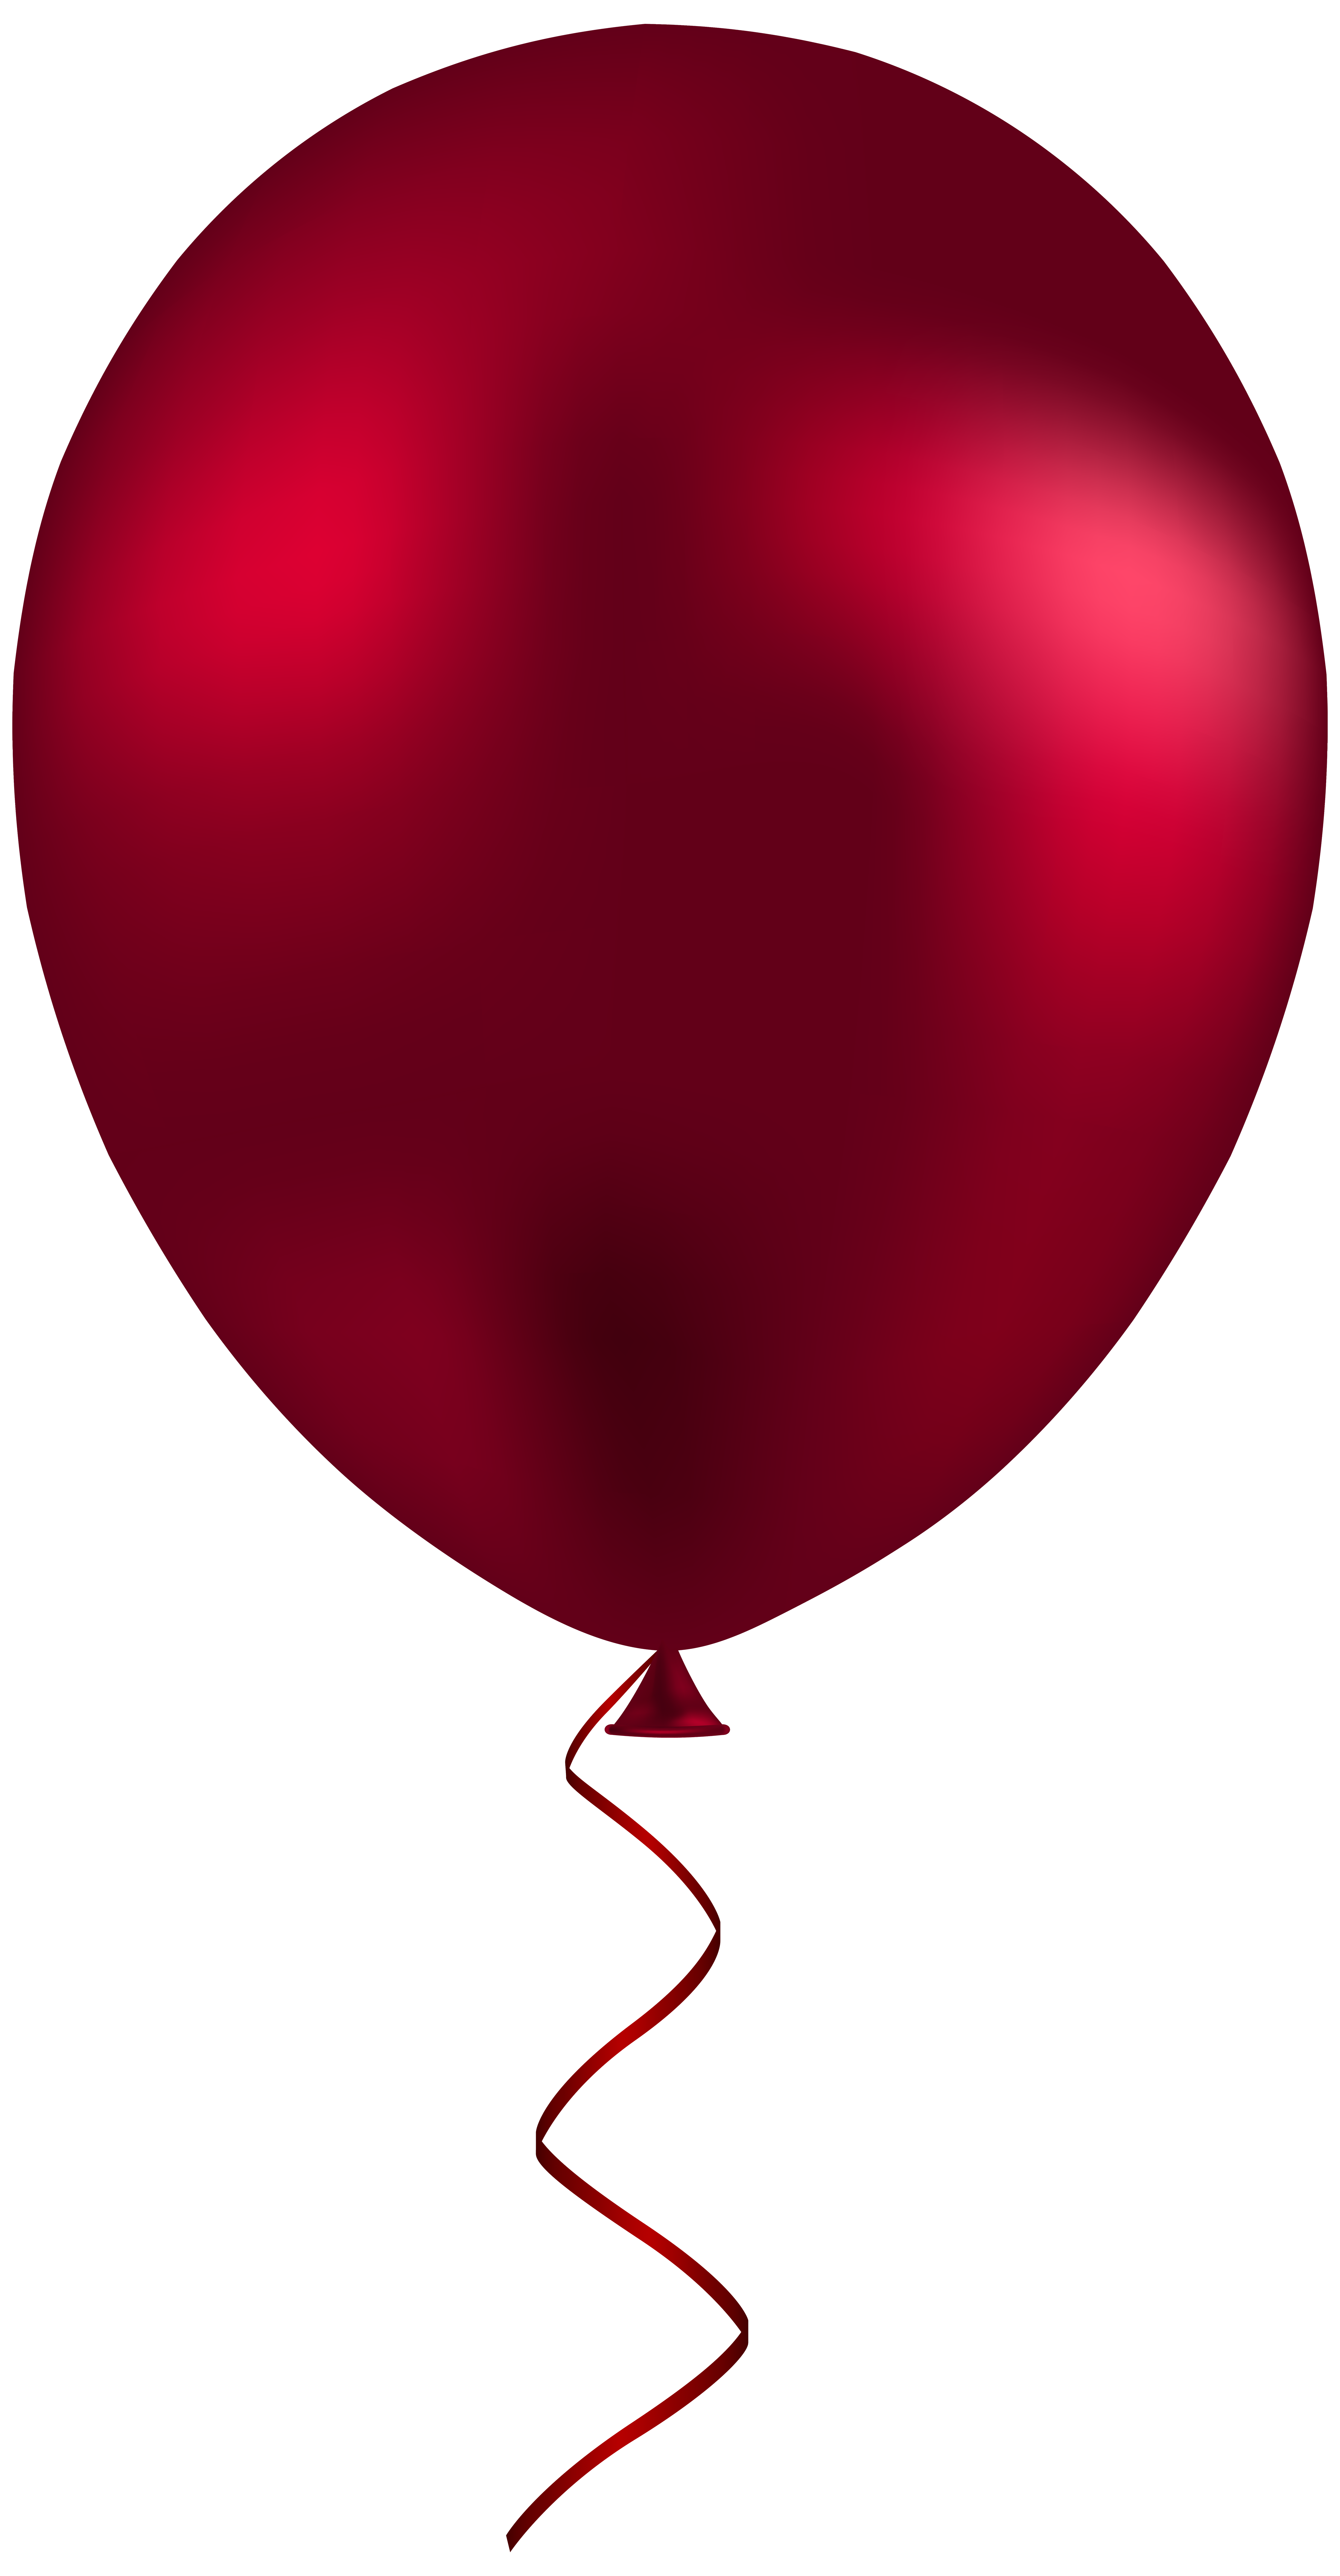 red balloon png